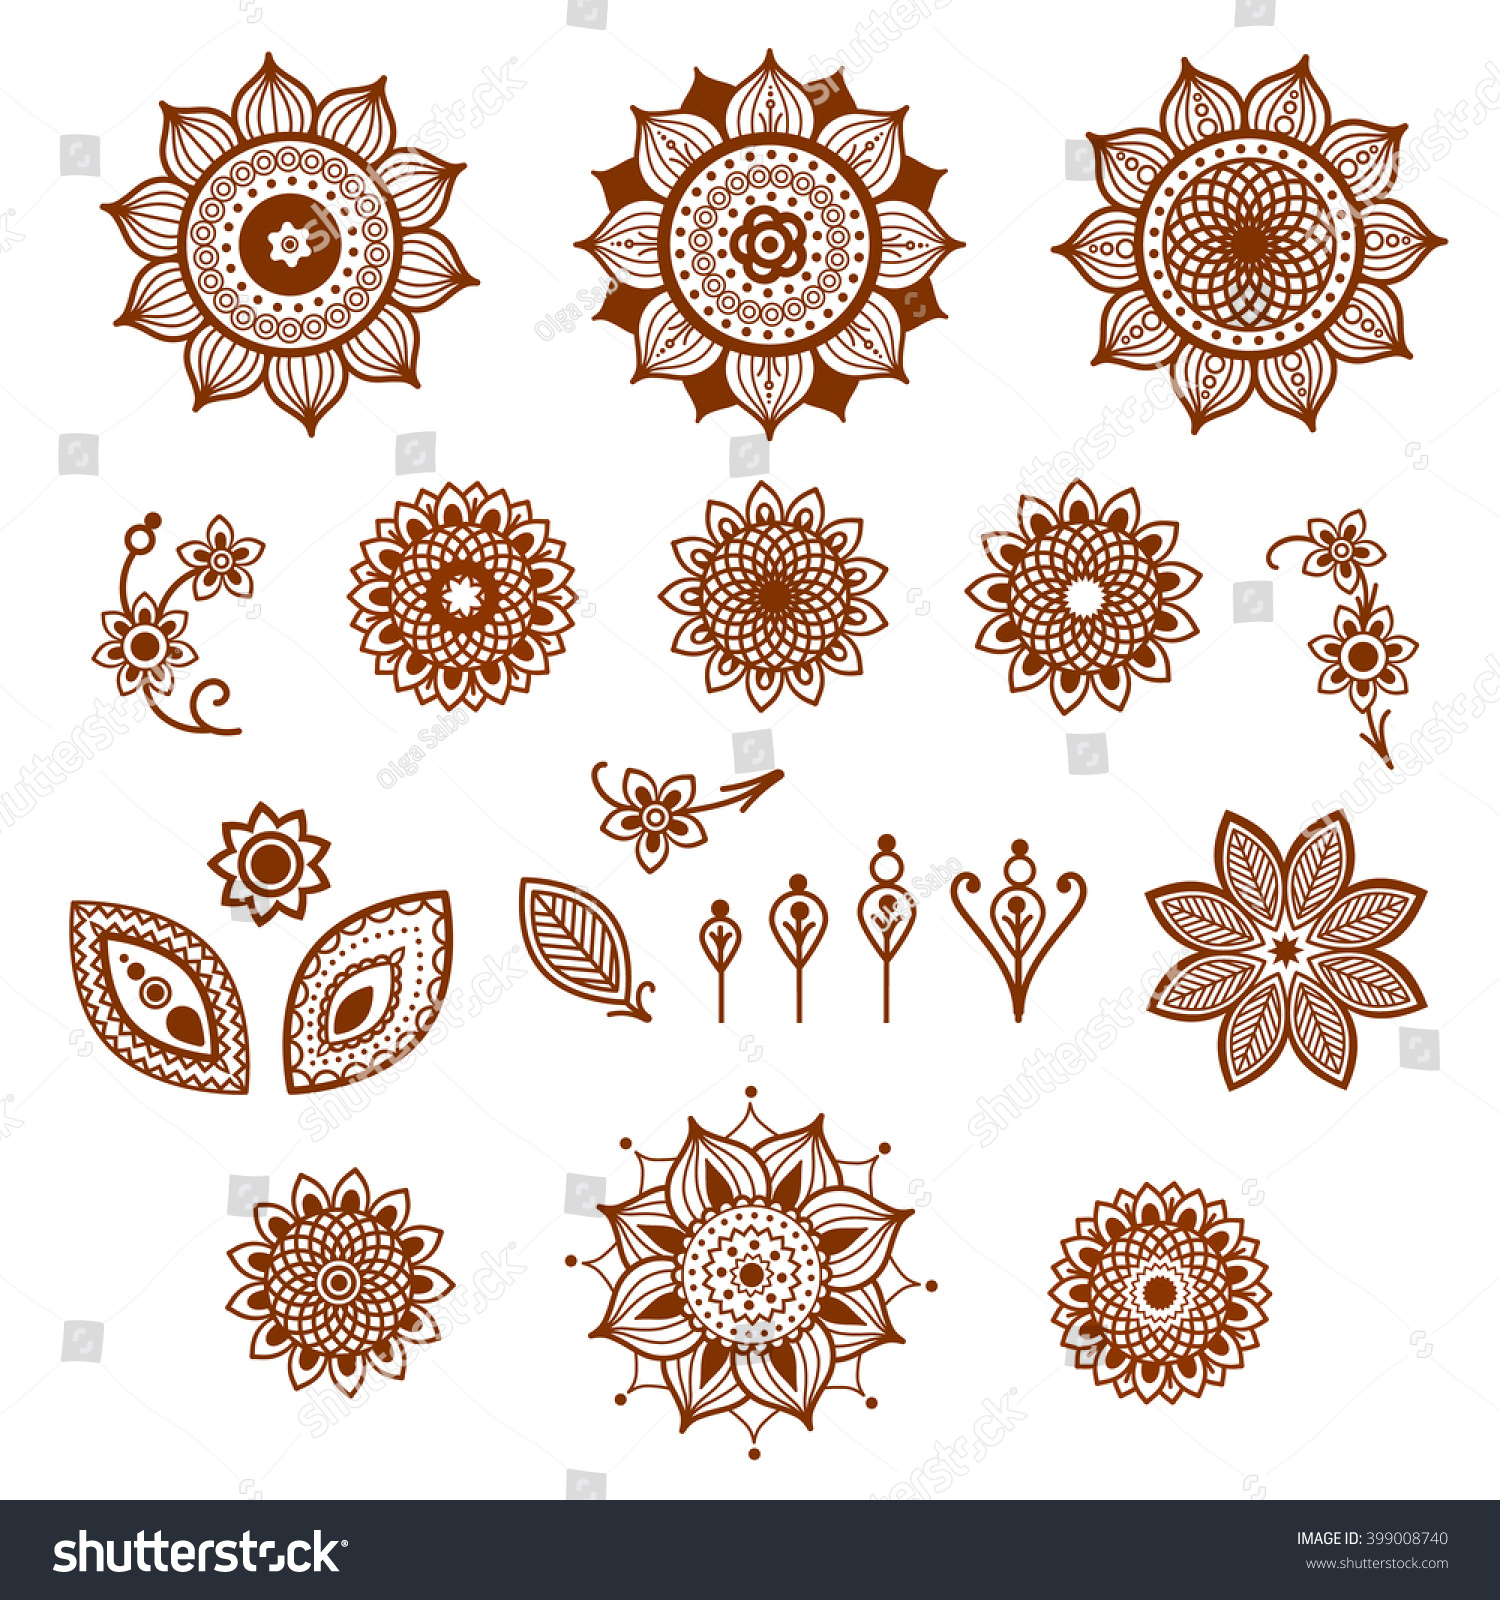 Henna Ornamental Floral Elements Mehndi Style Different